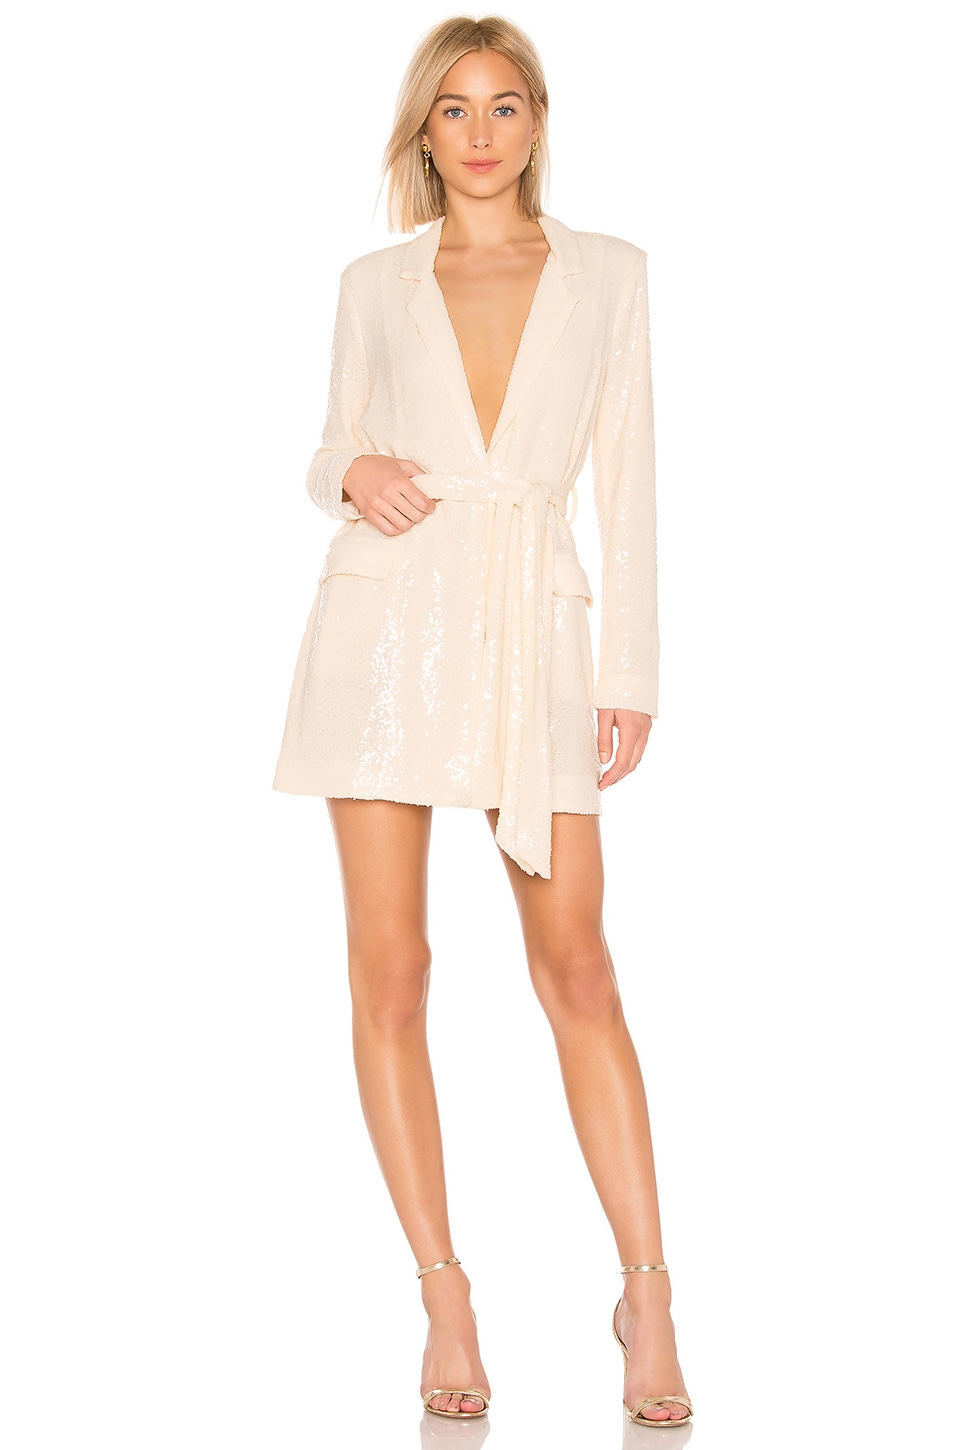 LPA Eleonora Suit Dress in Nude